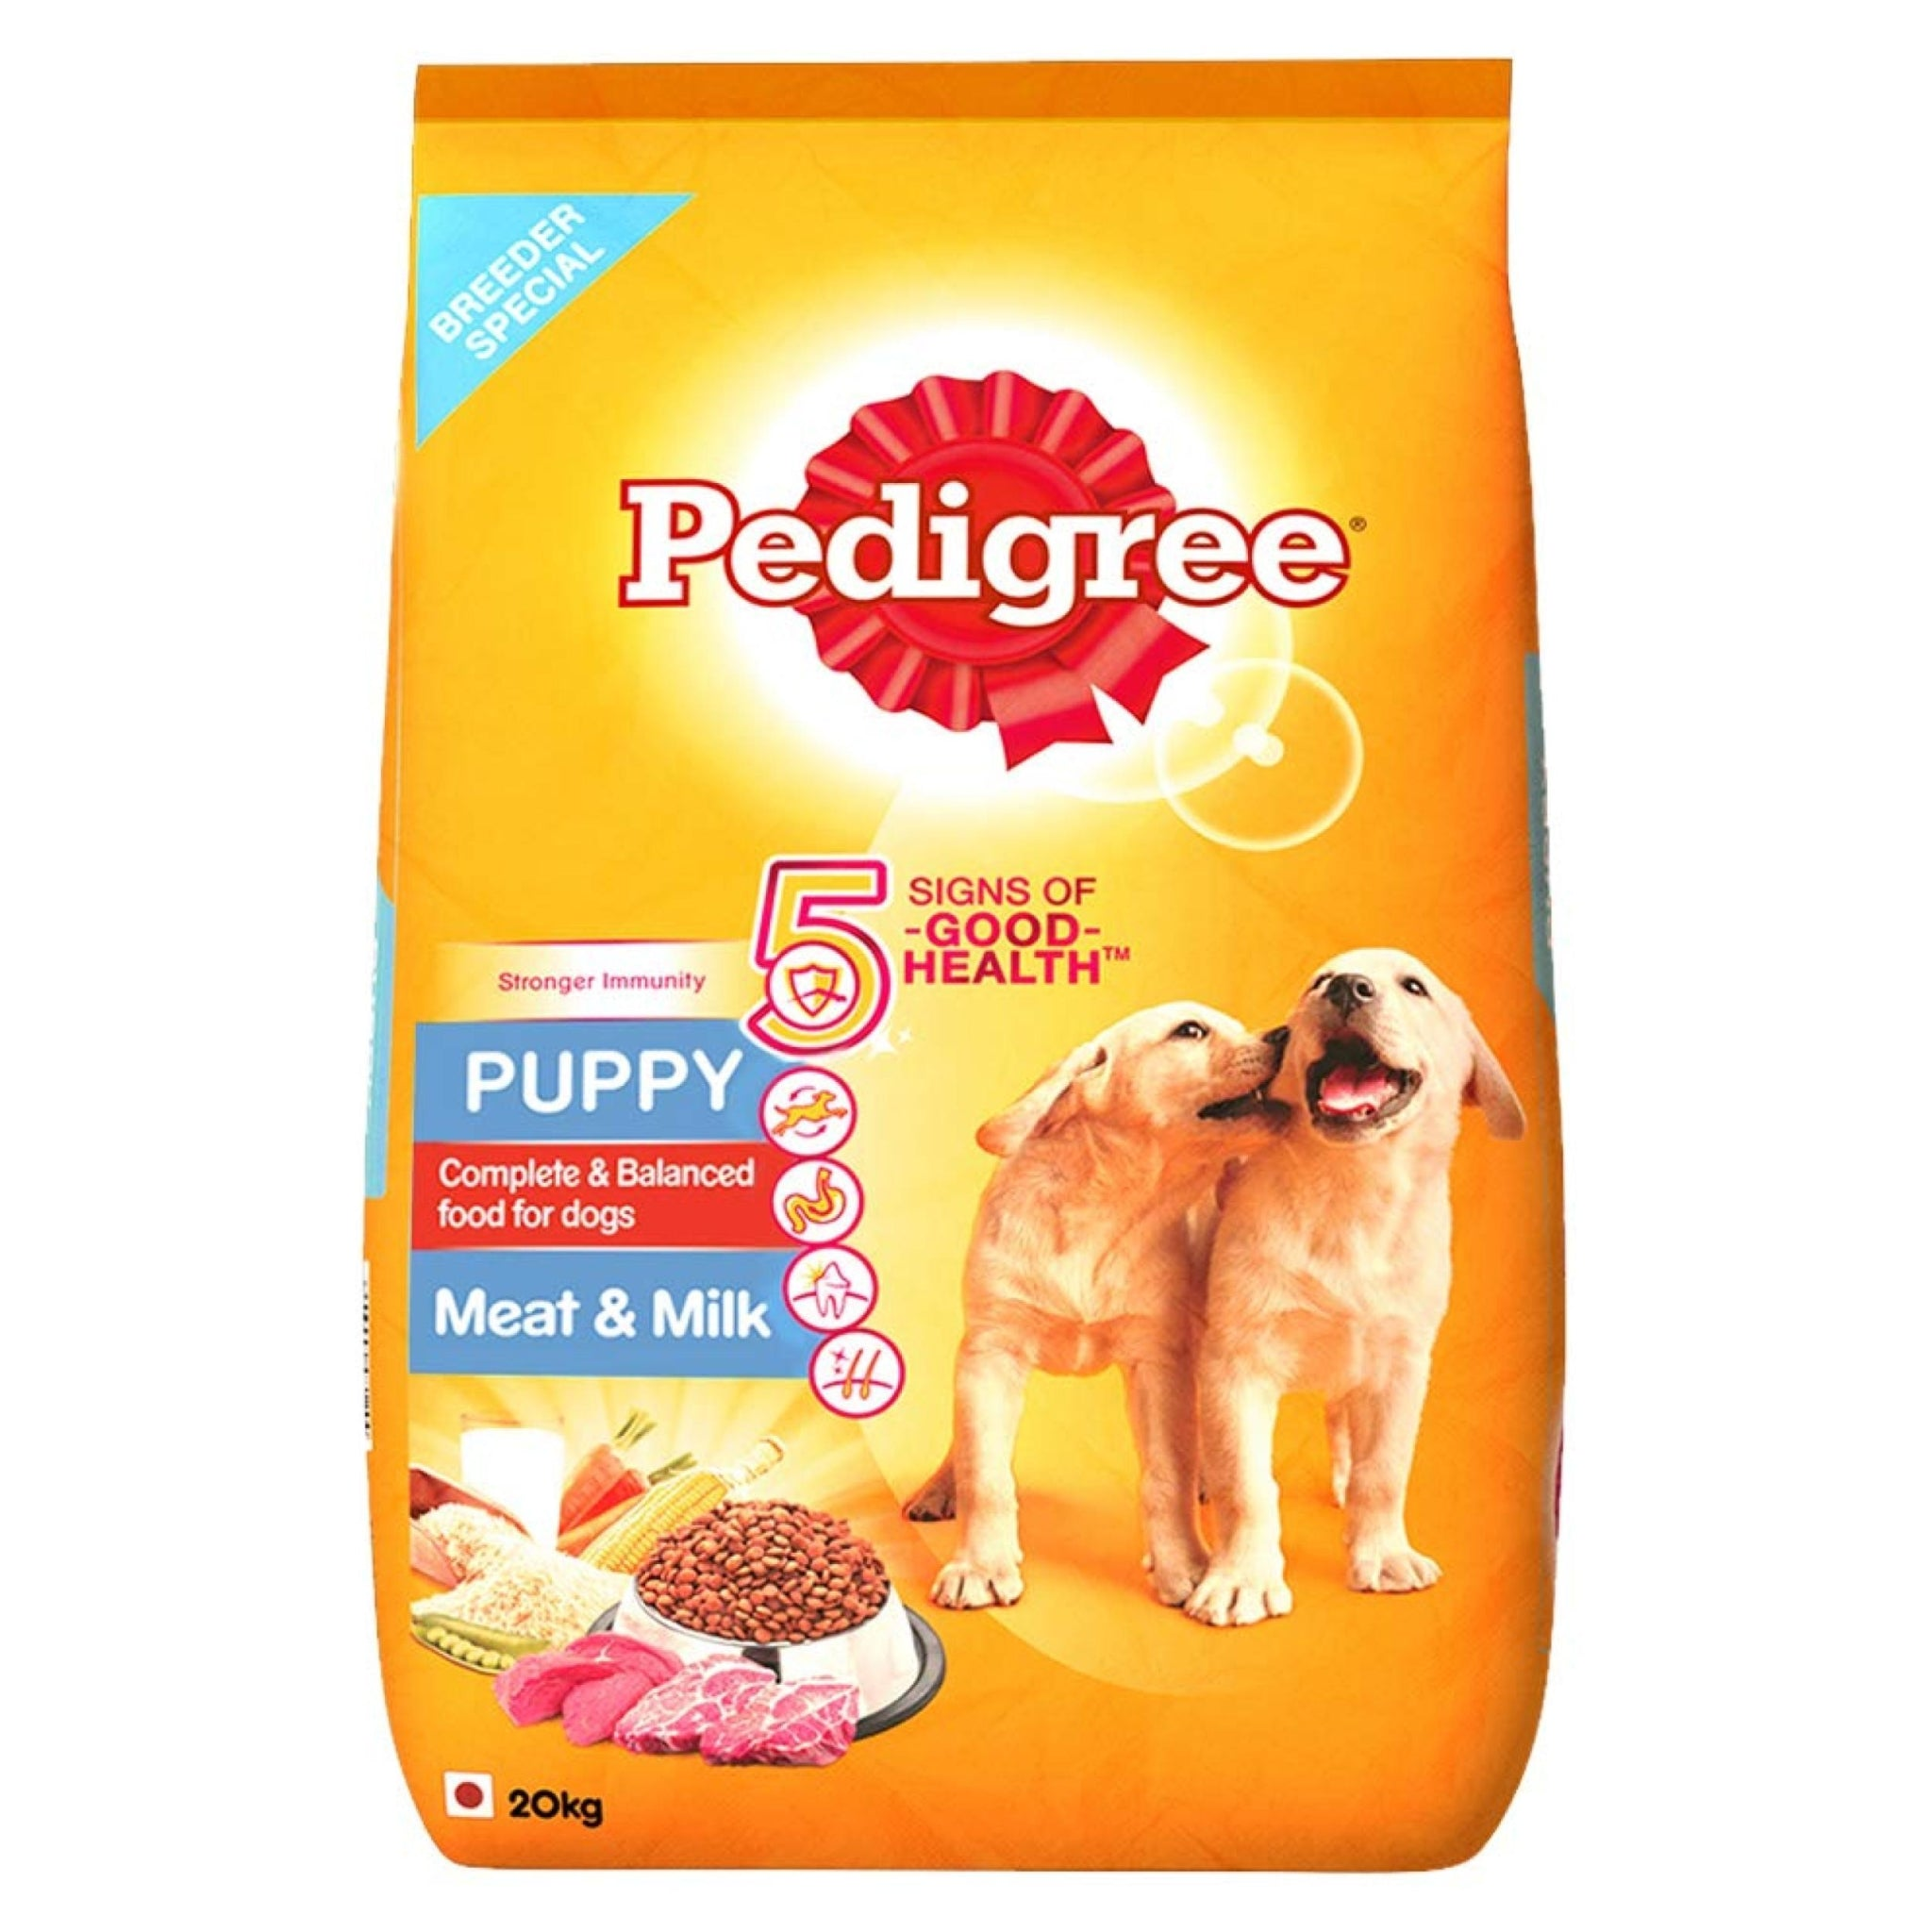 Pedigree Meat And Milk Puppy Dog Food - 20Kgs - Poochles